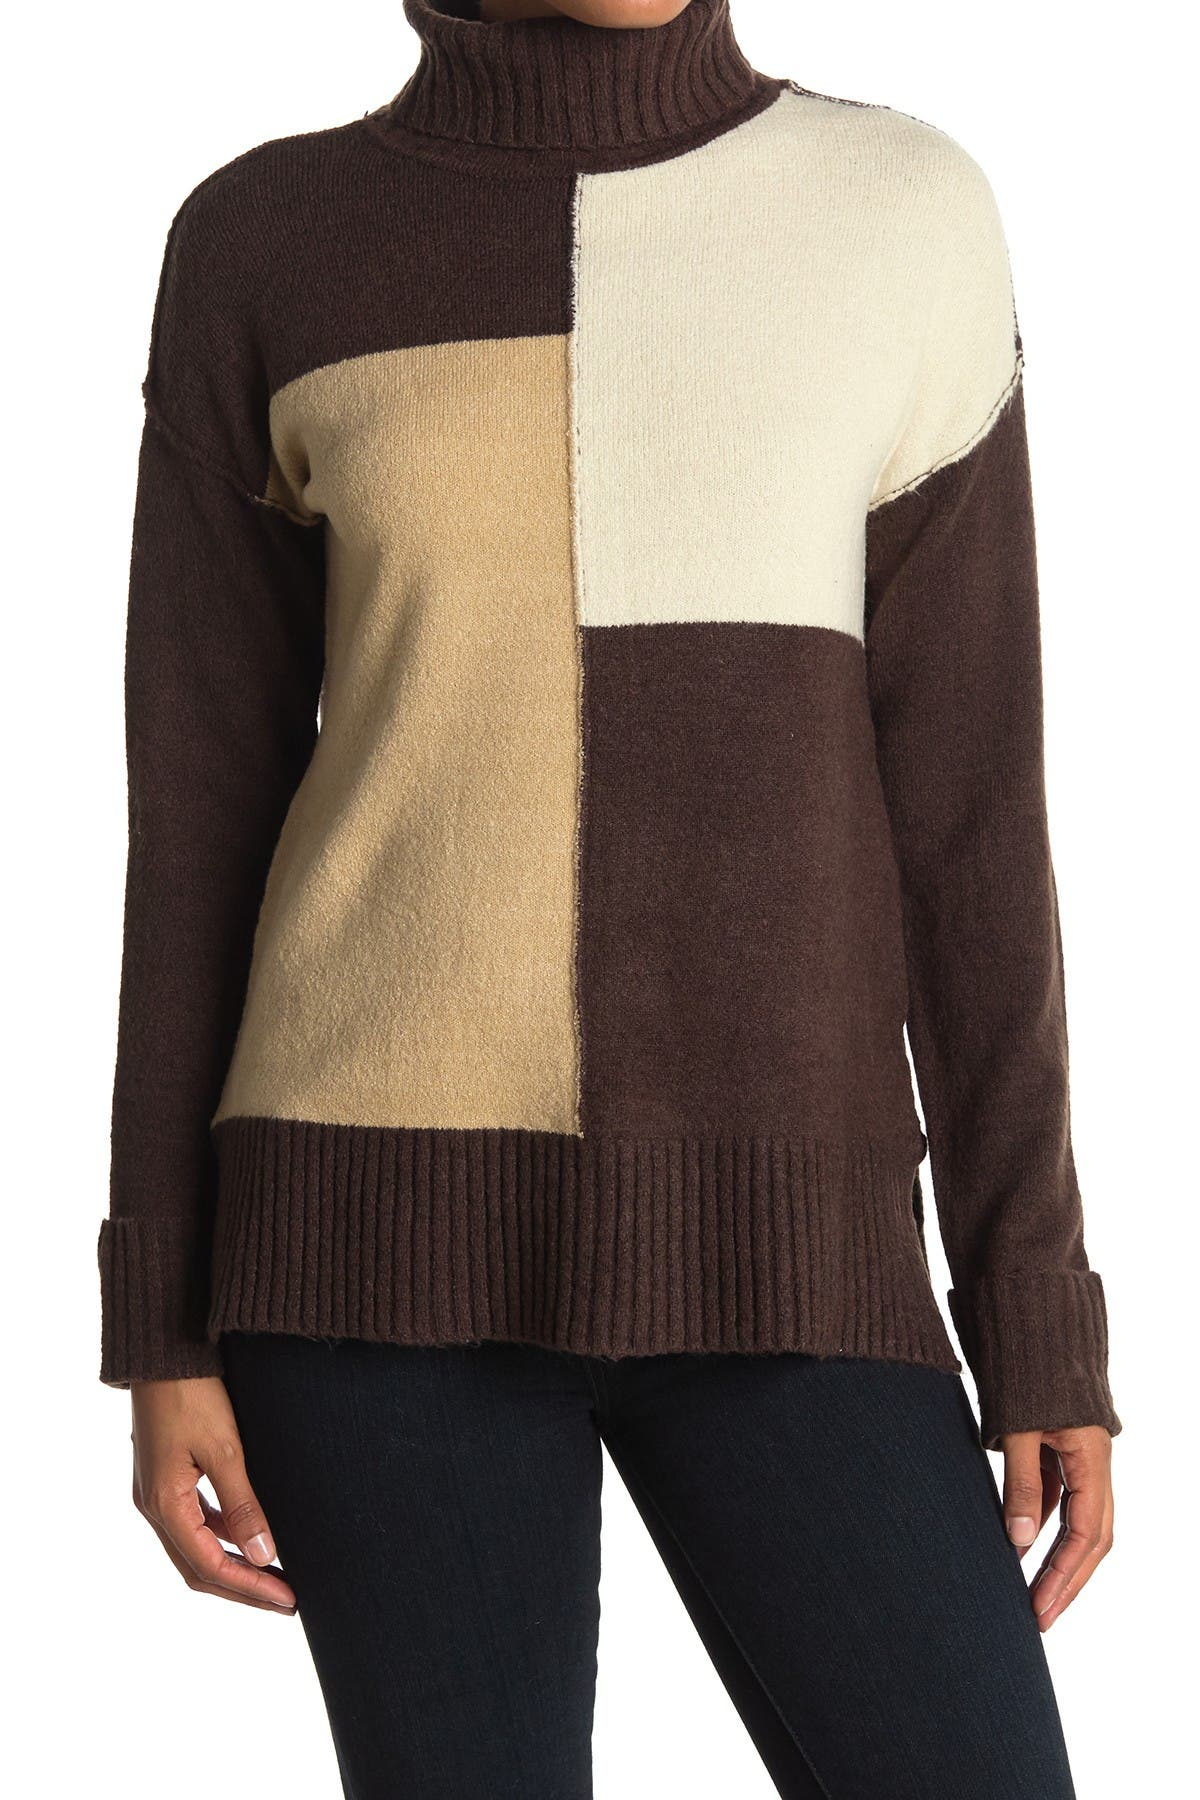 Image of Cyrus Colorblock Cowl Neck Sweater